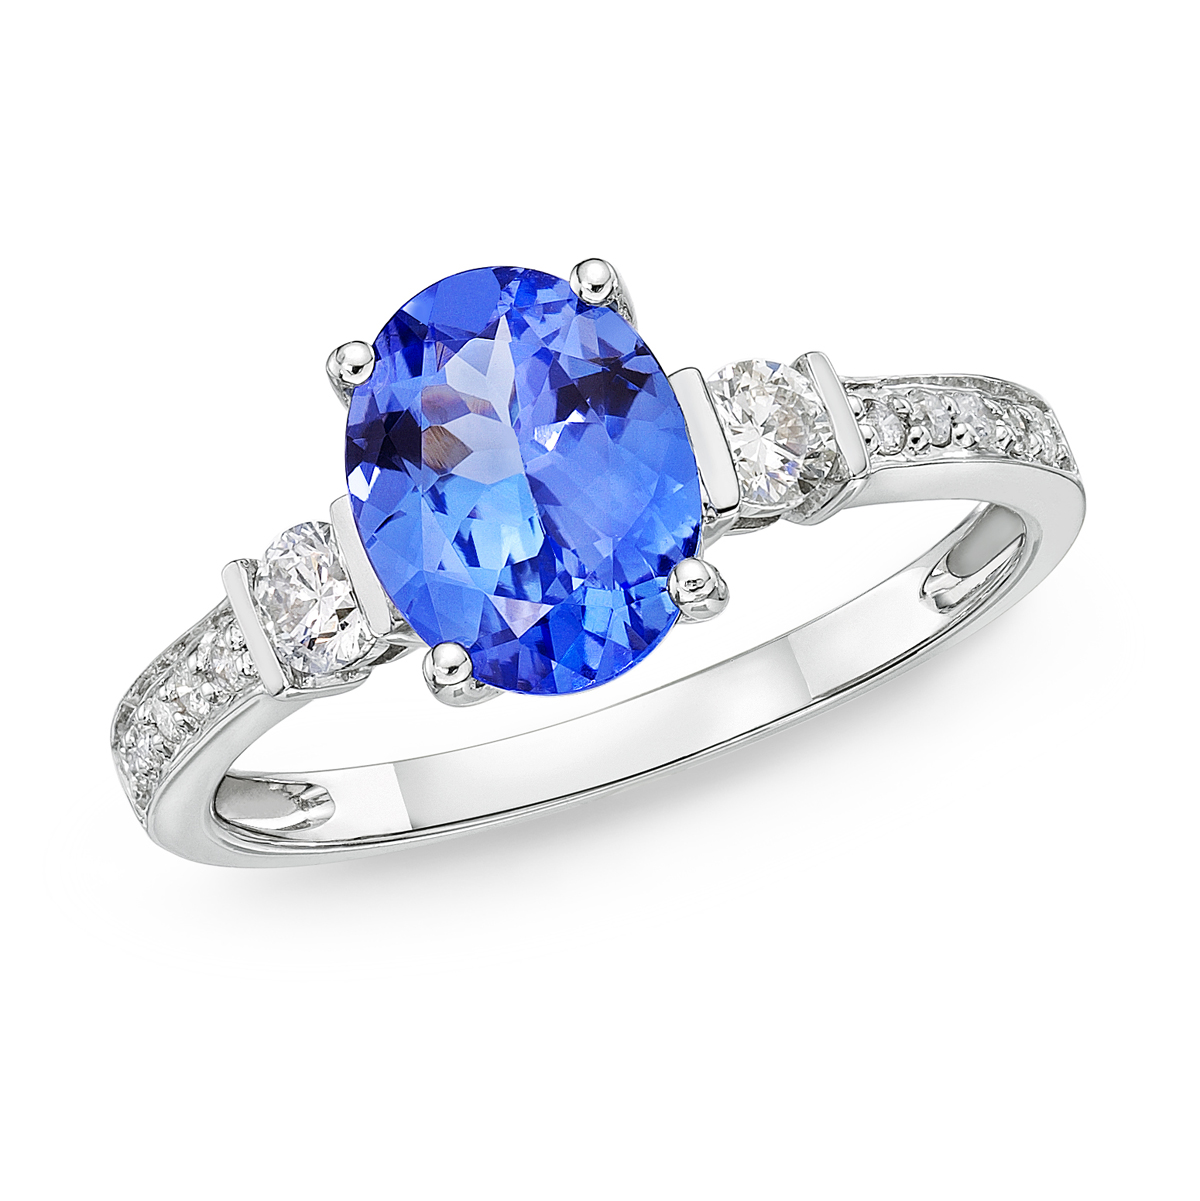 s pricing kj custom gemstone man htm mens diamond tanzanite men ring price and